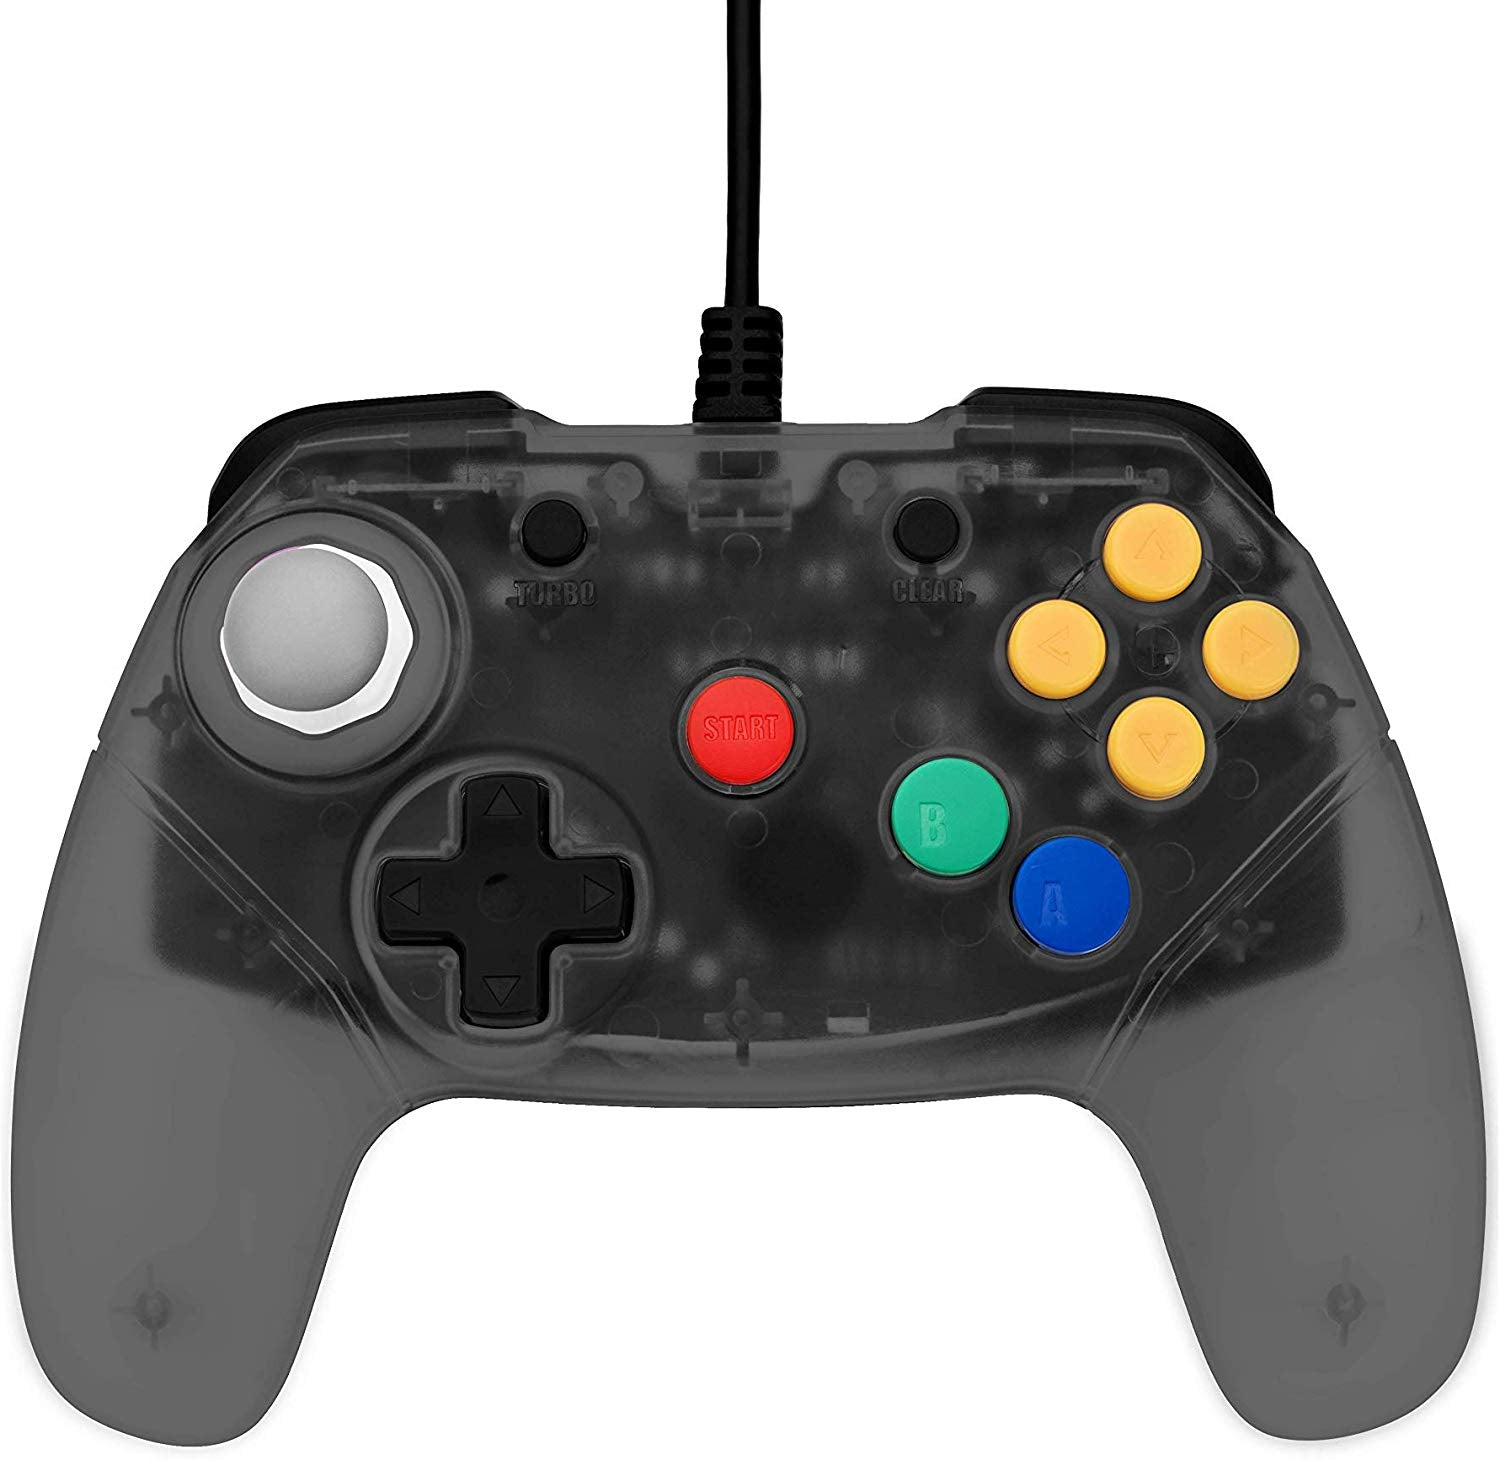 Retro Fighters Brawler64 Next Gen N64 Controller Game Pad - Nintendo 64 - Smoke Gray